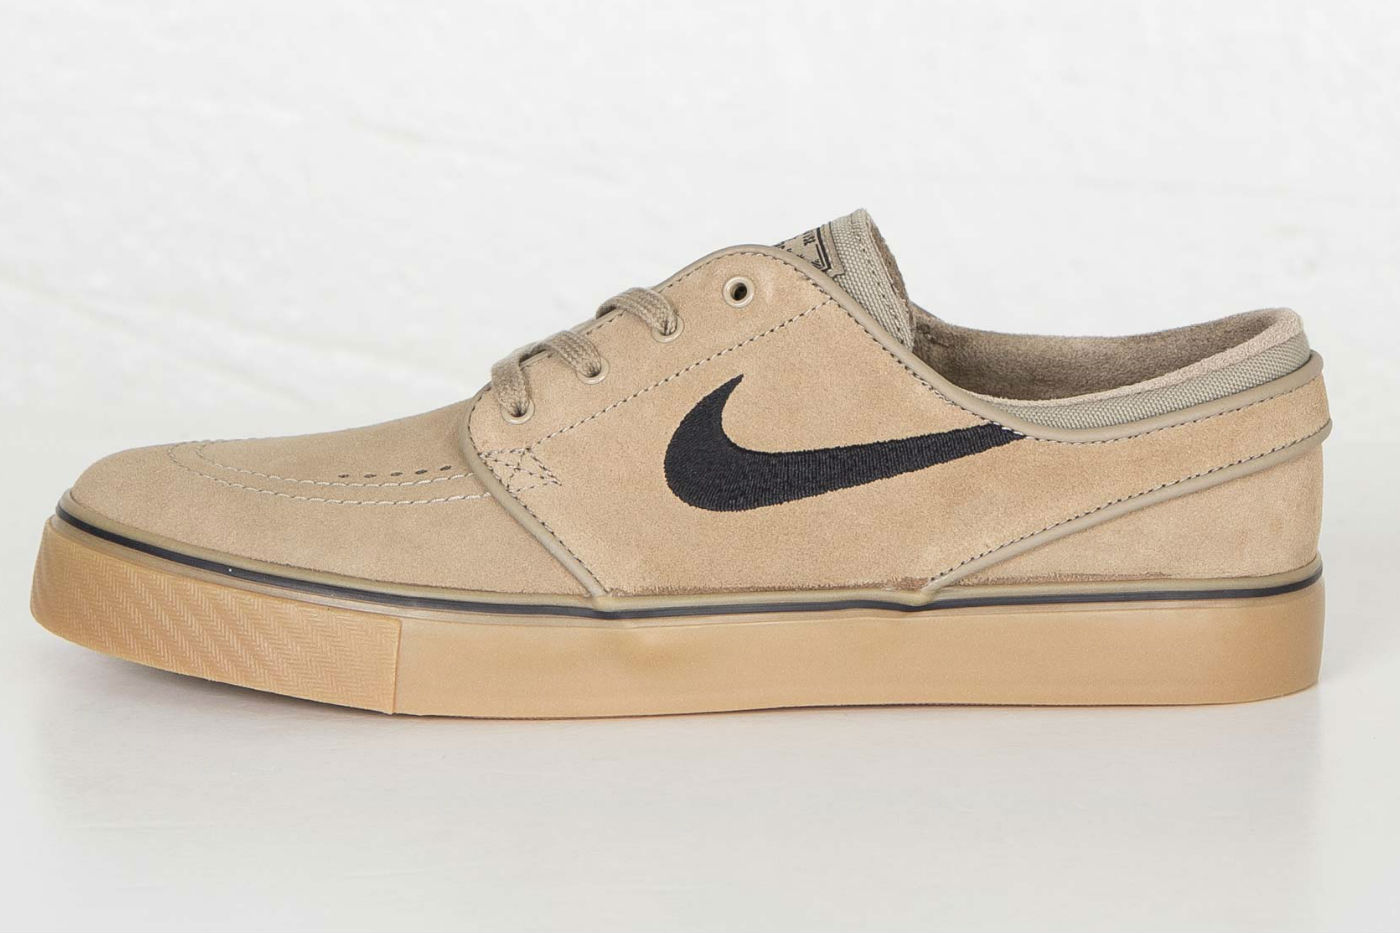 Nike SB Stefan Janoski Khaki-Black Gum/Light Brown